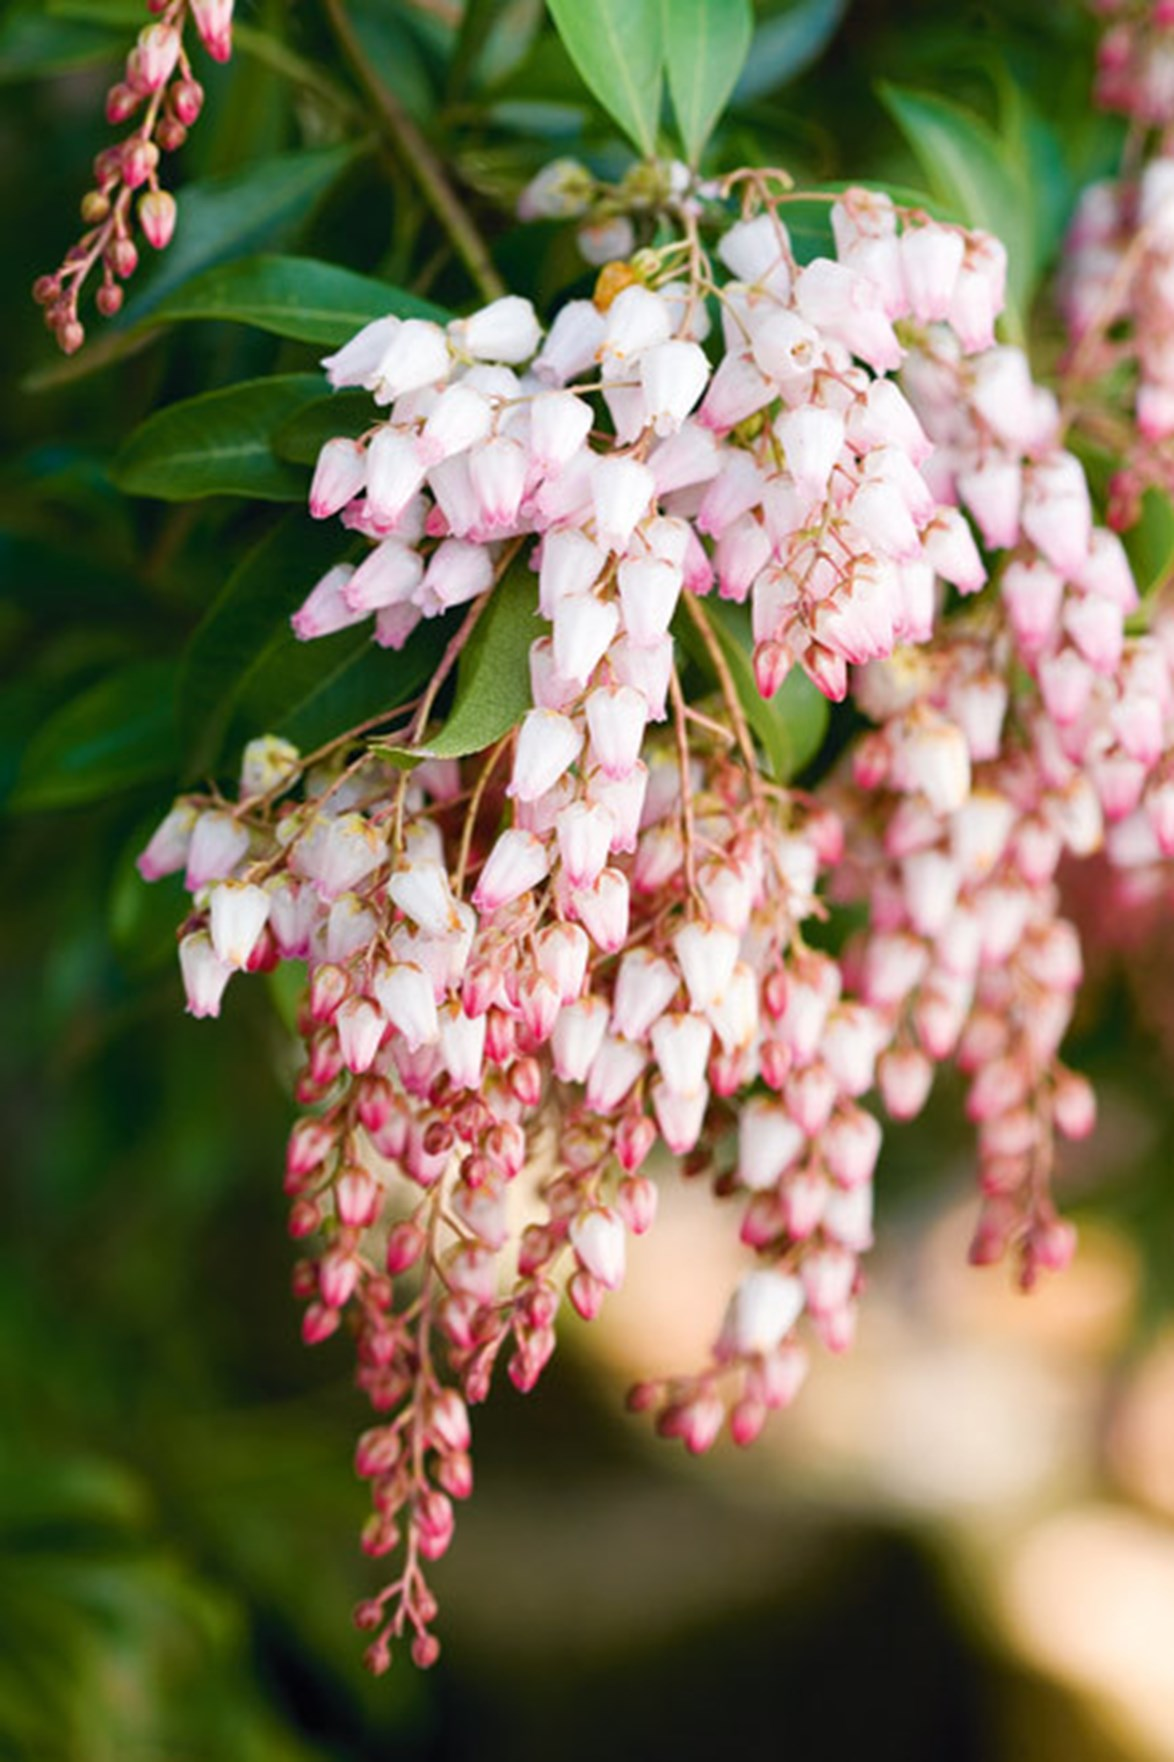 The beautiful Lily of the valley shrub enjoys shady areas under trees in cooler areas of Australia.